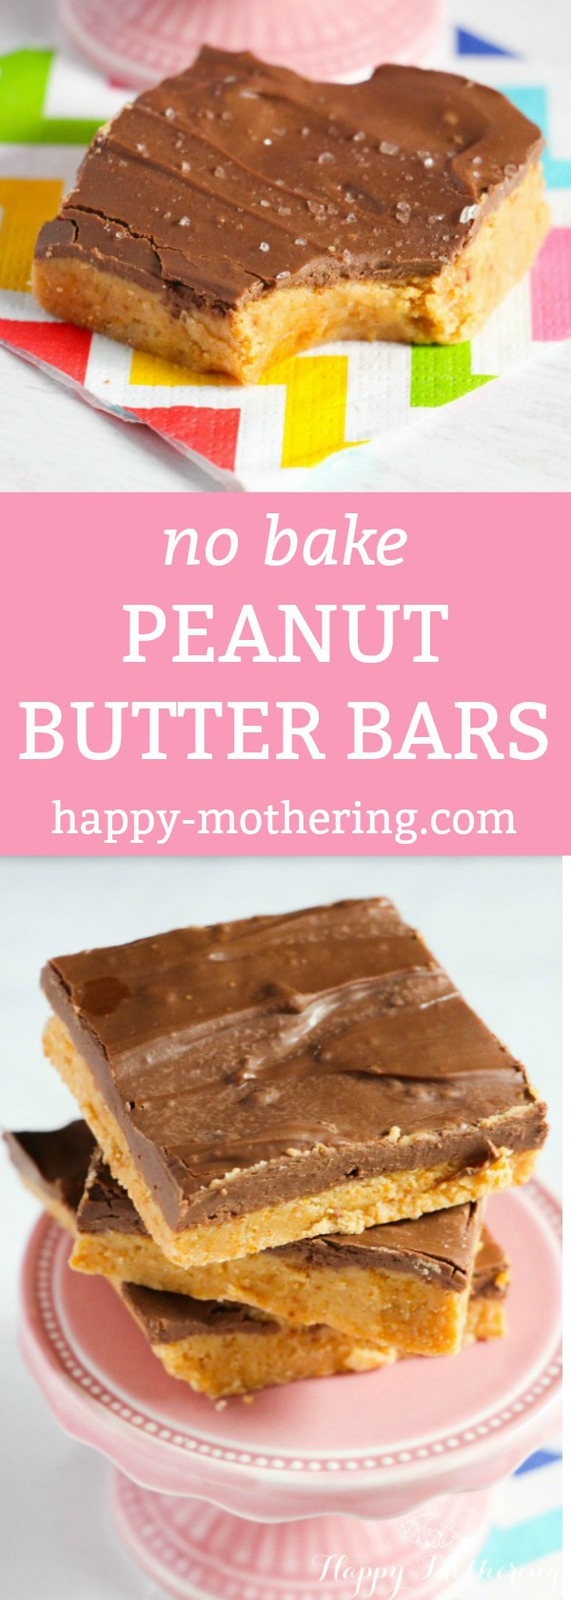 Are you looking for the best no bake dessert recipe? These Gluten Free No Bake Peanut Butter Bars are the best you'll find! Get the family favorite recipe.